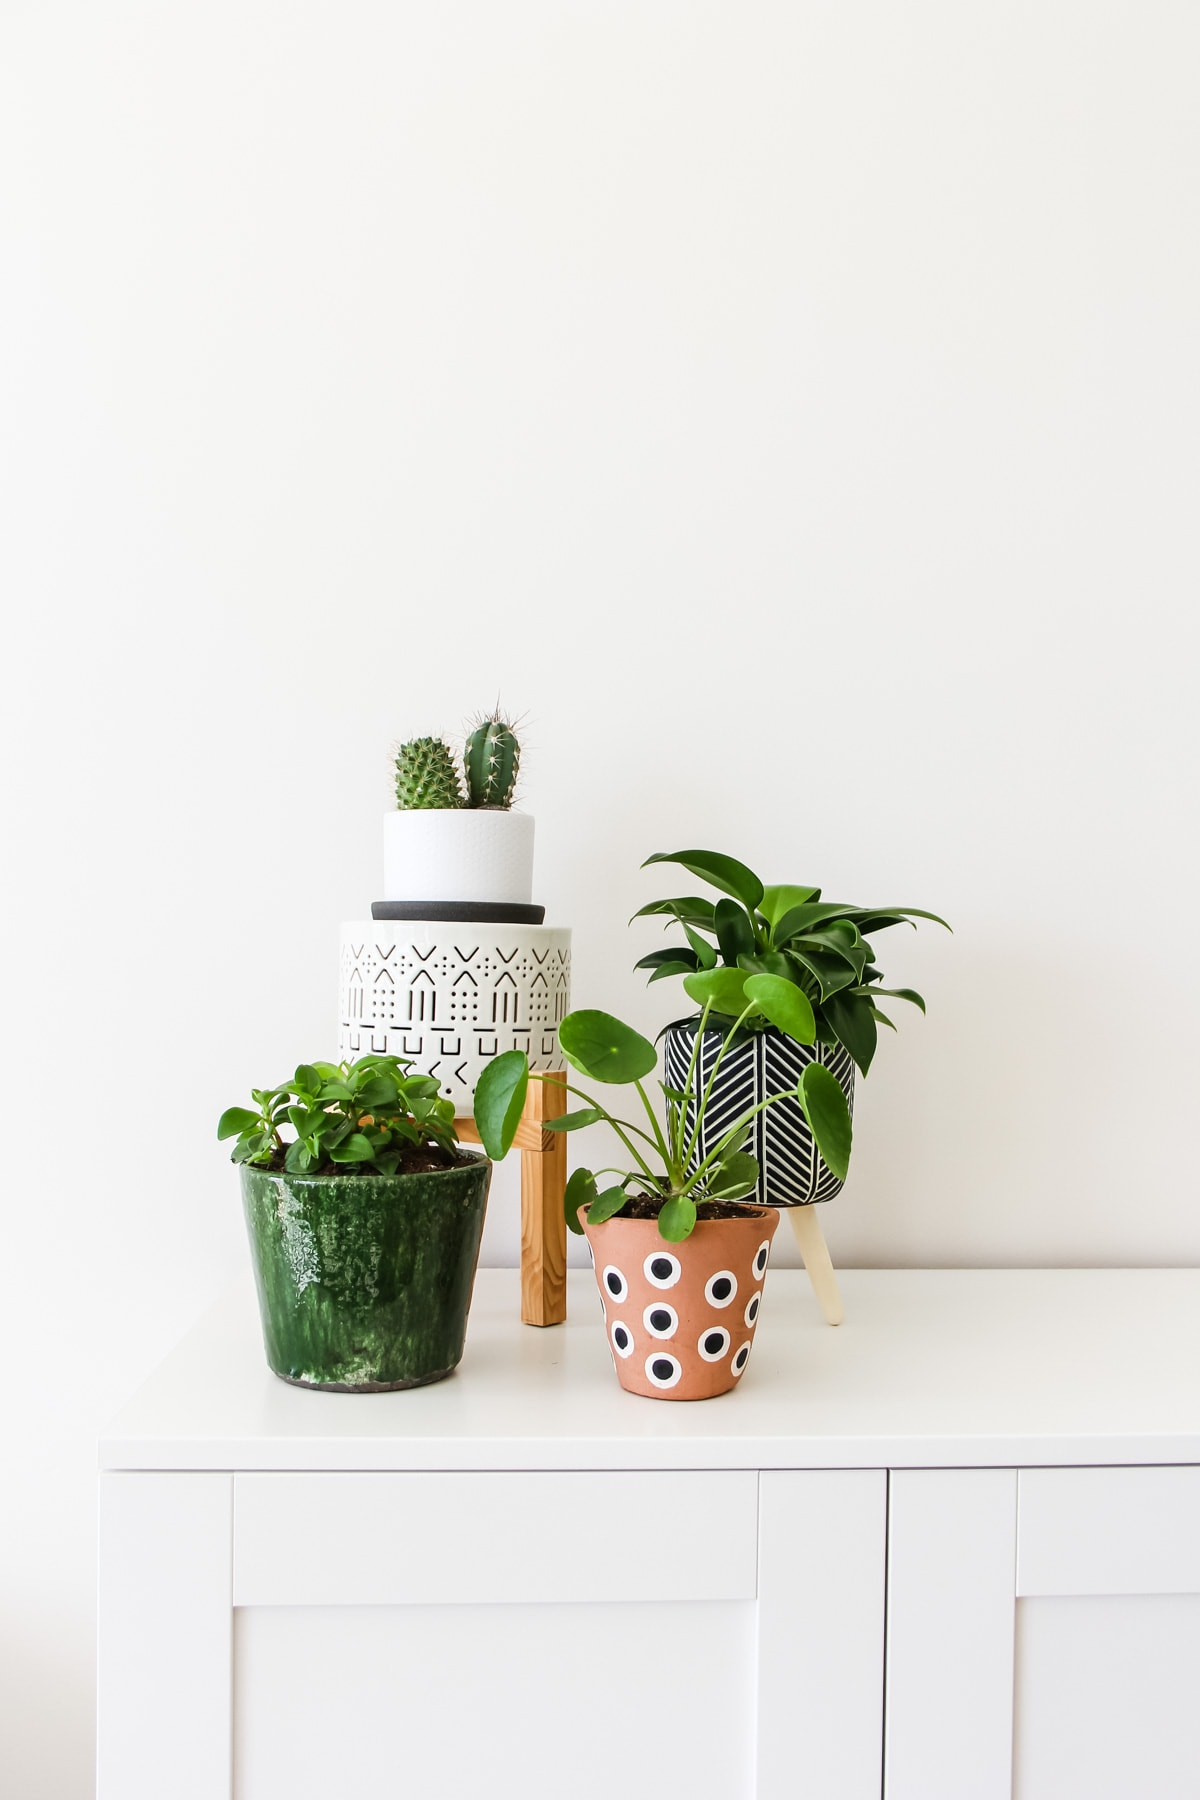 a collection of four plants in different patterned vases, sitting on a white cabinet